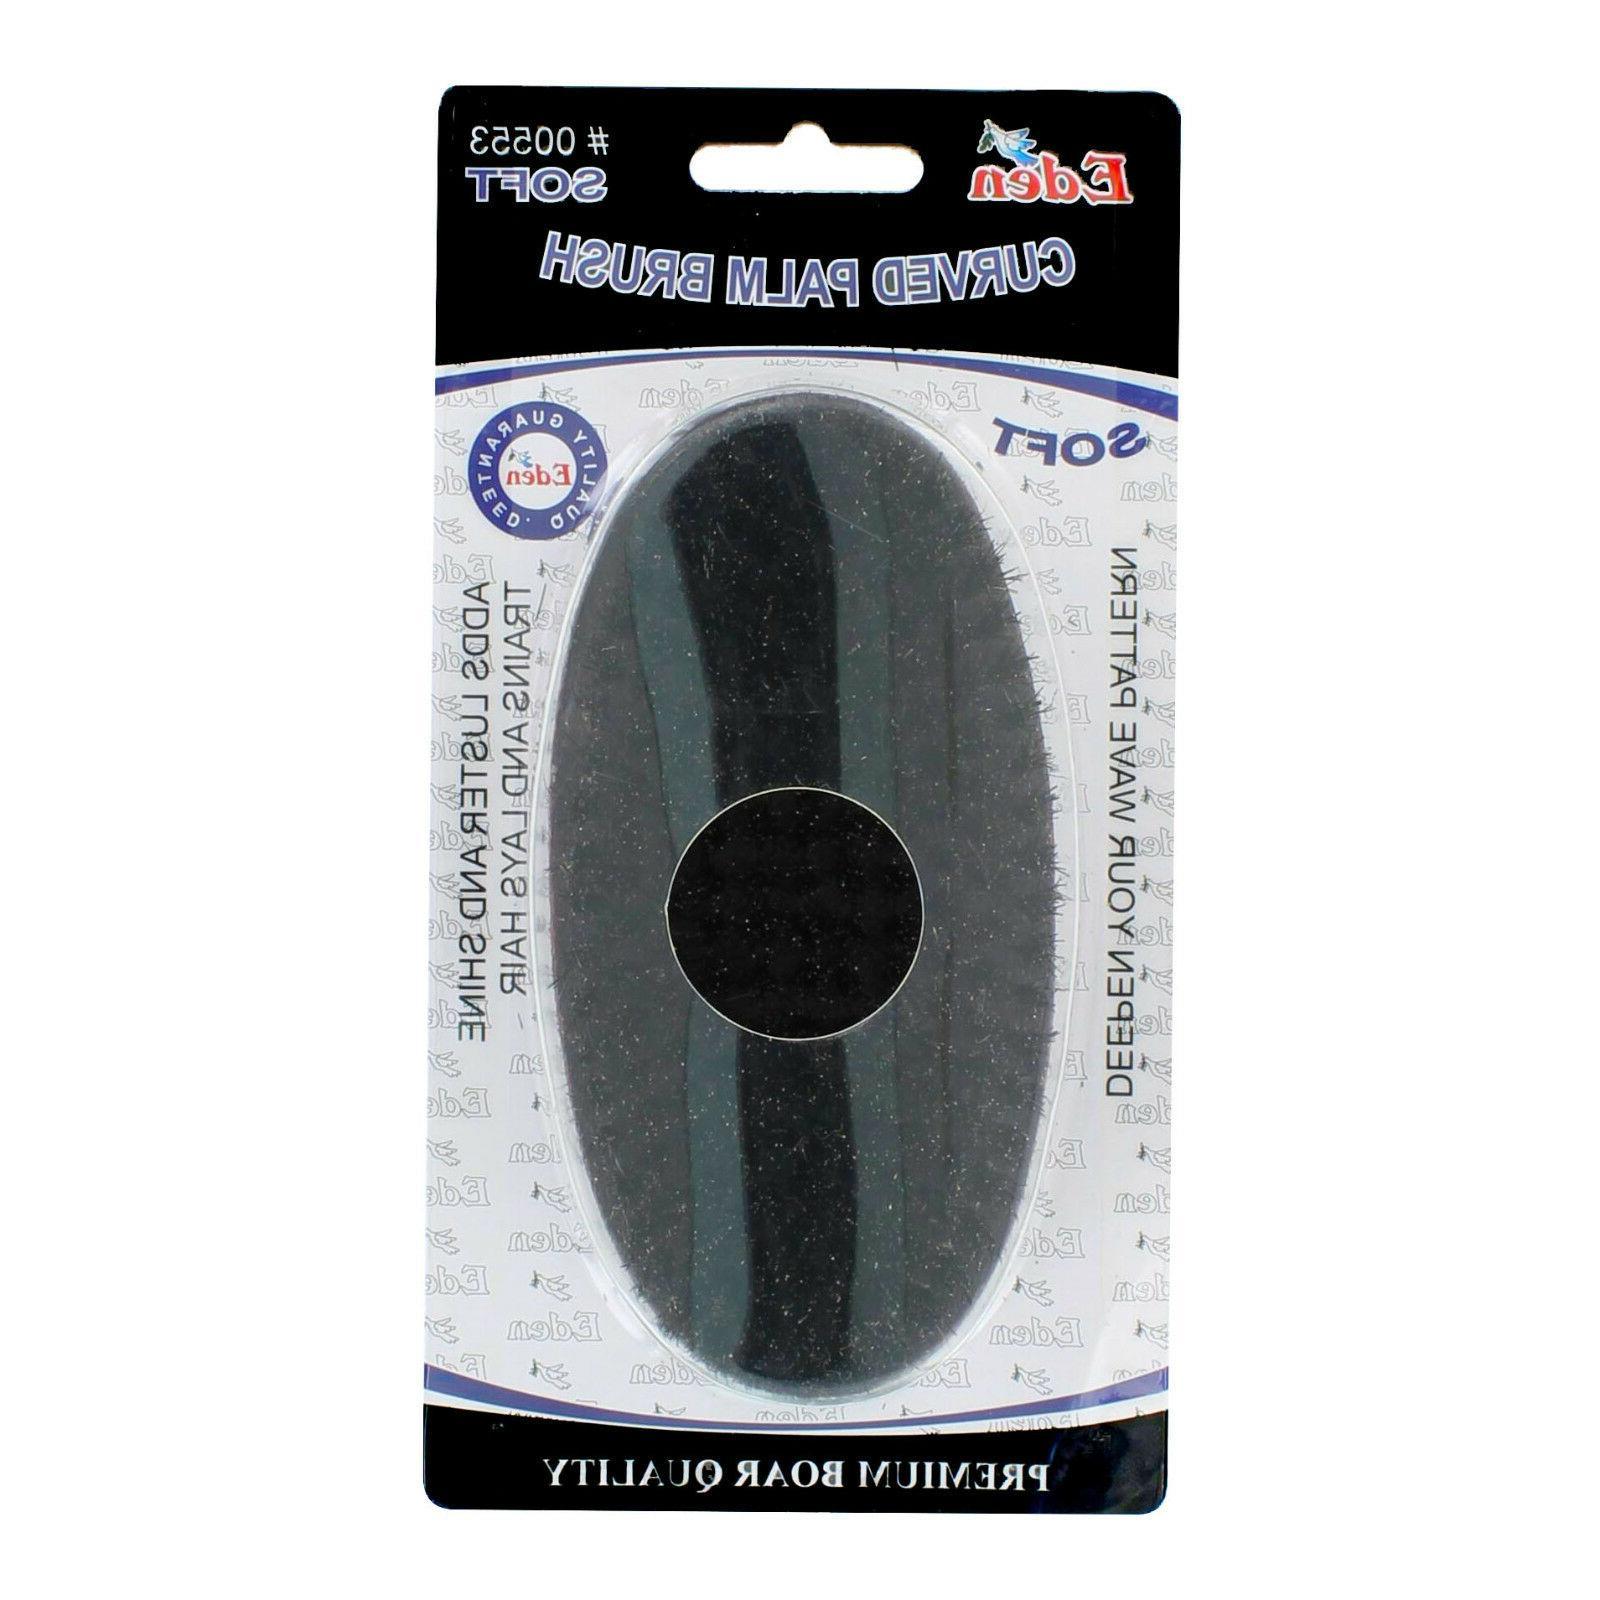 Curved Wave Hair Military Palm Brush NEW